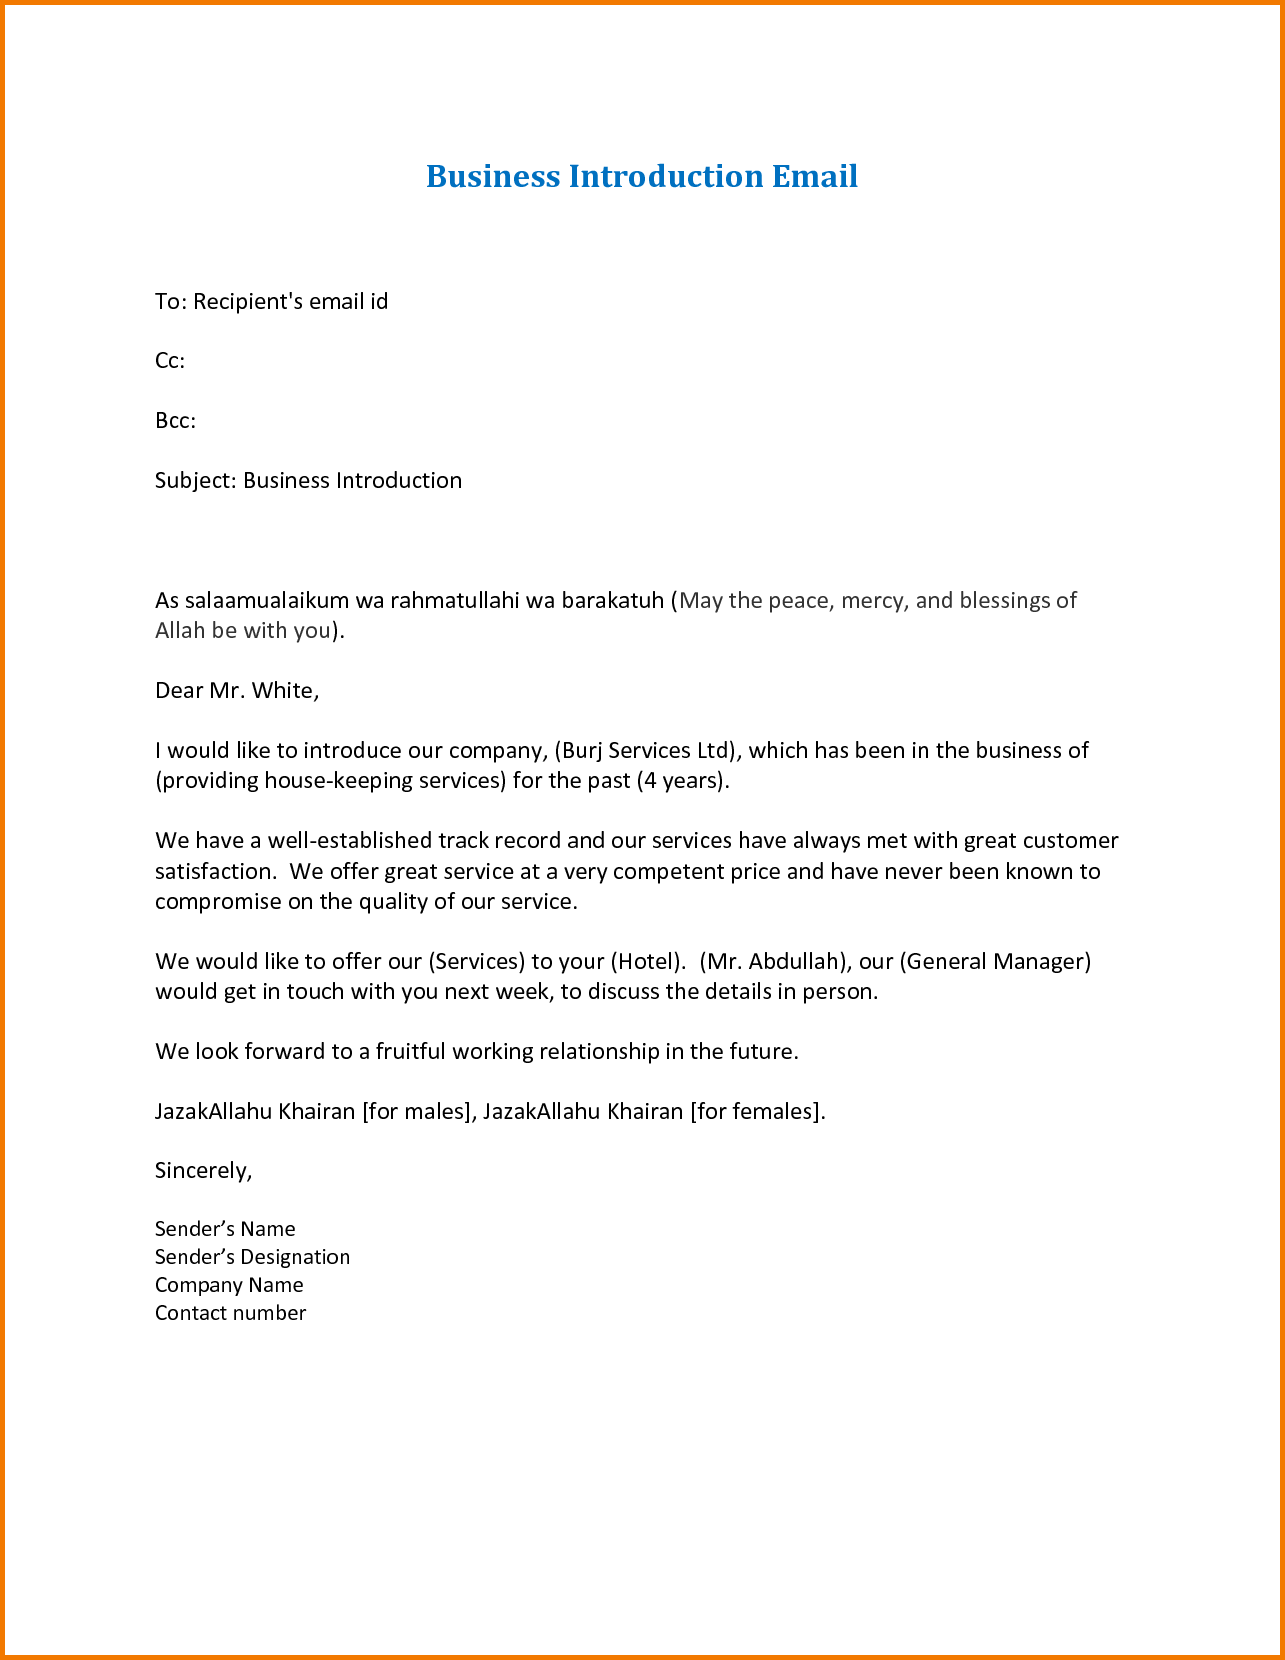 Company introduction email template letter civil contractor formal company introduction email template letter civil contractor formal format accmission Gallery